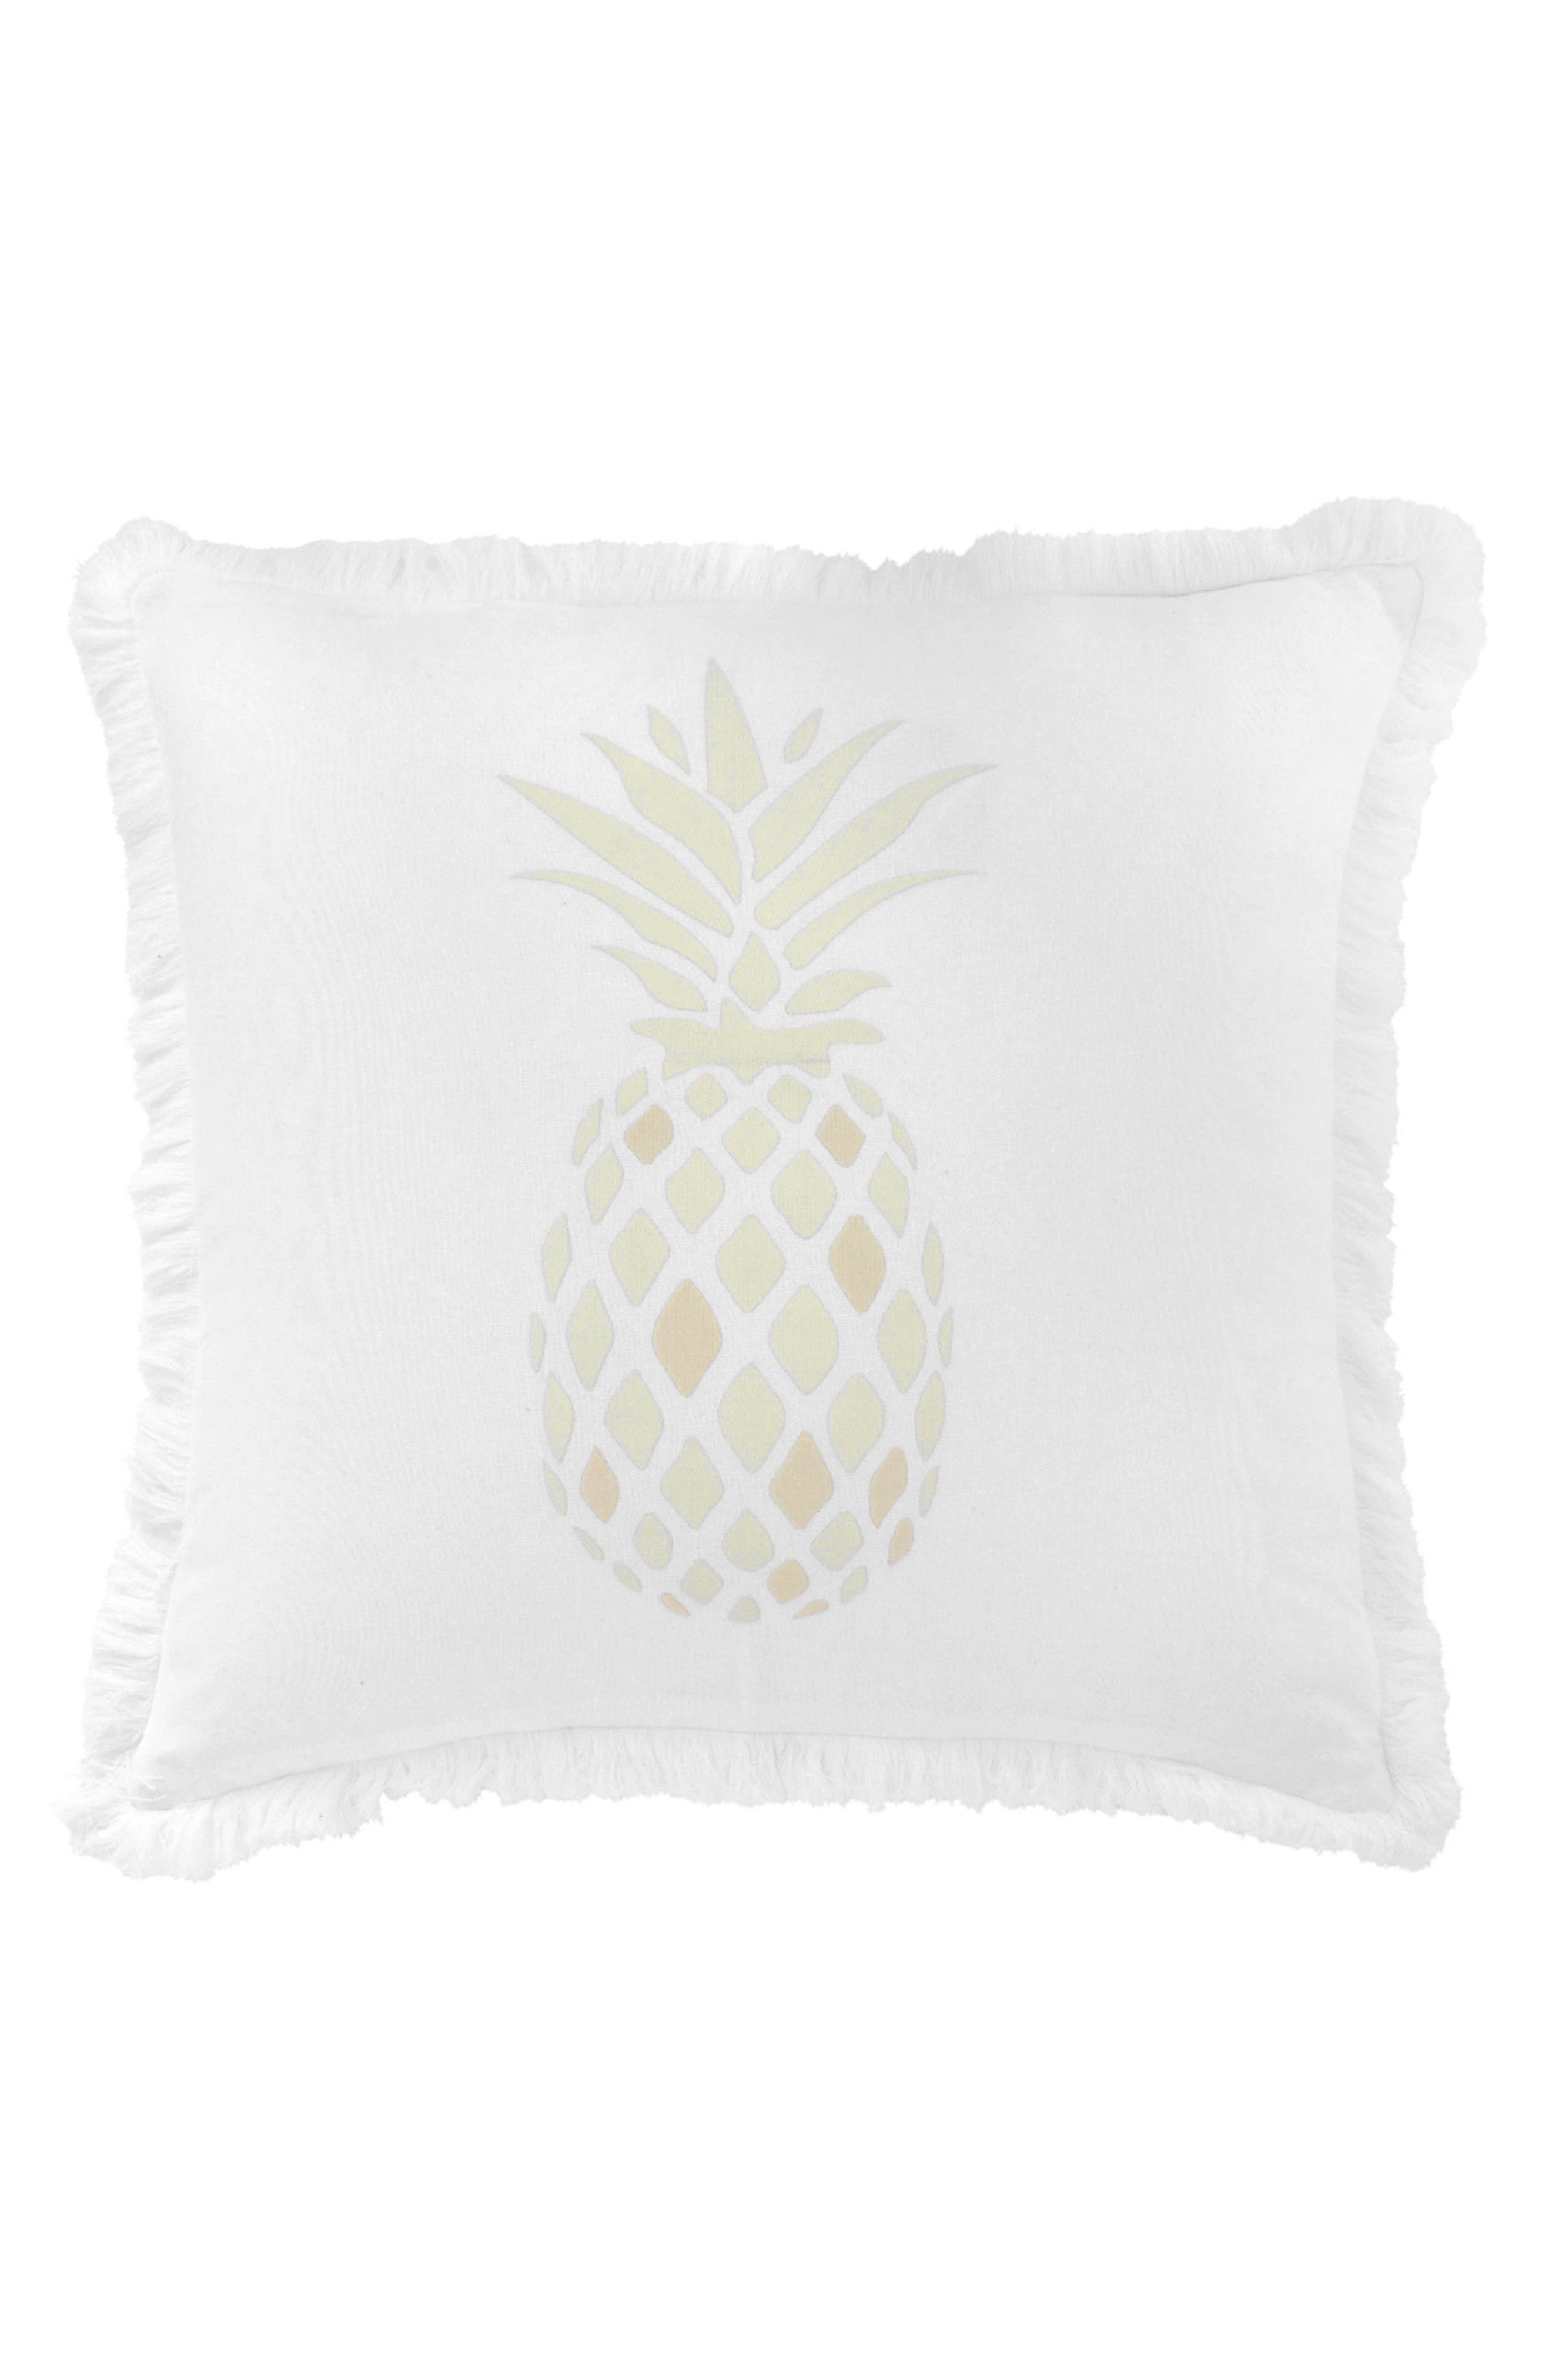 Southern Hospitality Pineapple Accent Pillow,                             Main thumbnail 1, color,